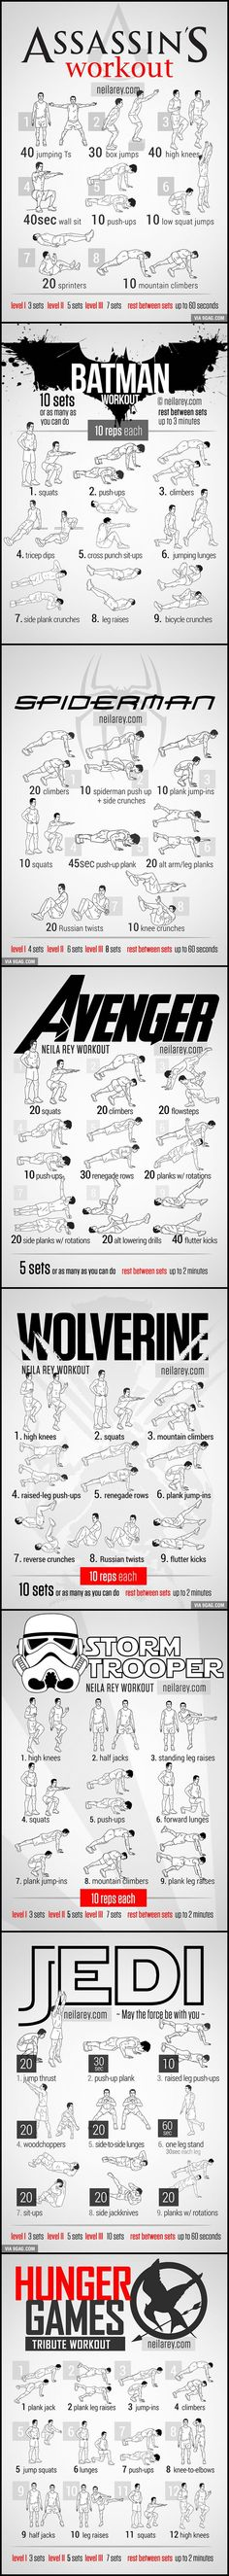 Workout for Assassin, Batman, Spiderman, Avenger, Wolverine, Stormtrooper, Jedi and Hunger Games! I realize this is totally random, but I still think it's cool.